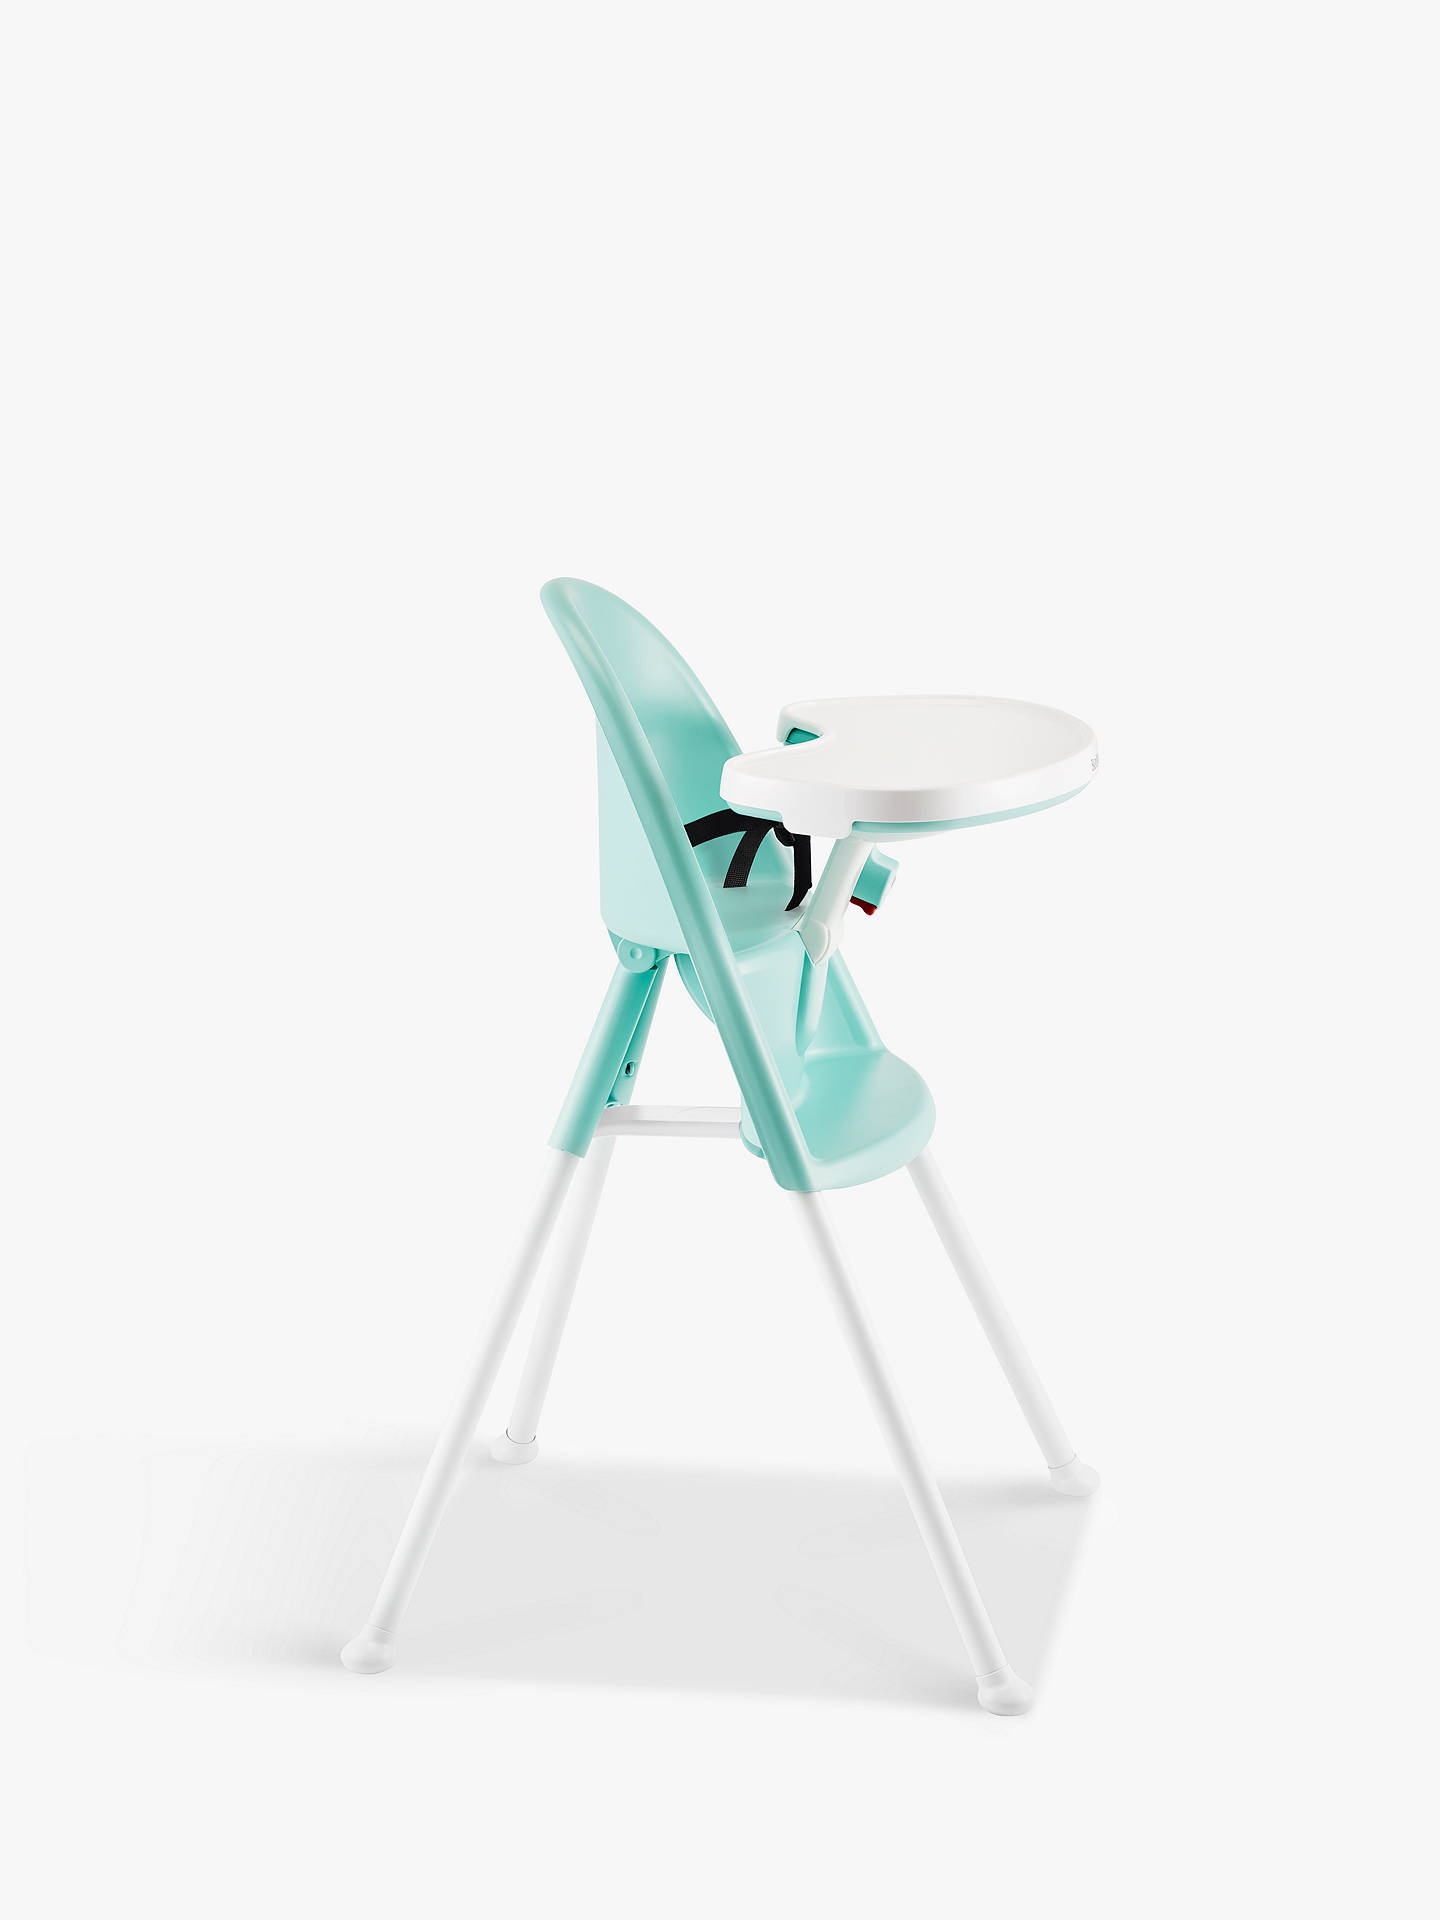 Babybjorn Highchair Light Green At John Lewis Partners